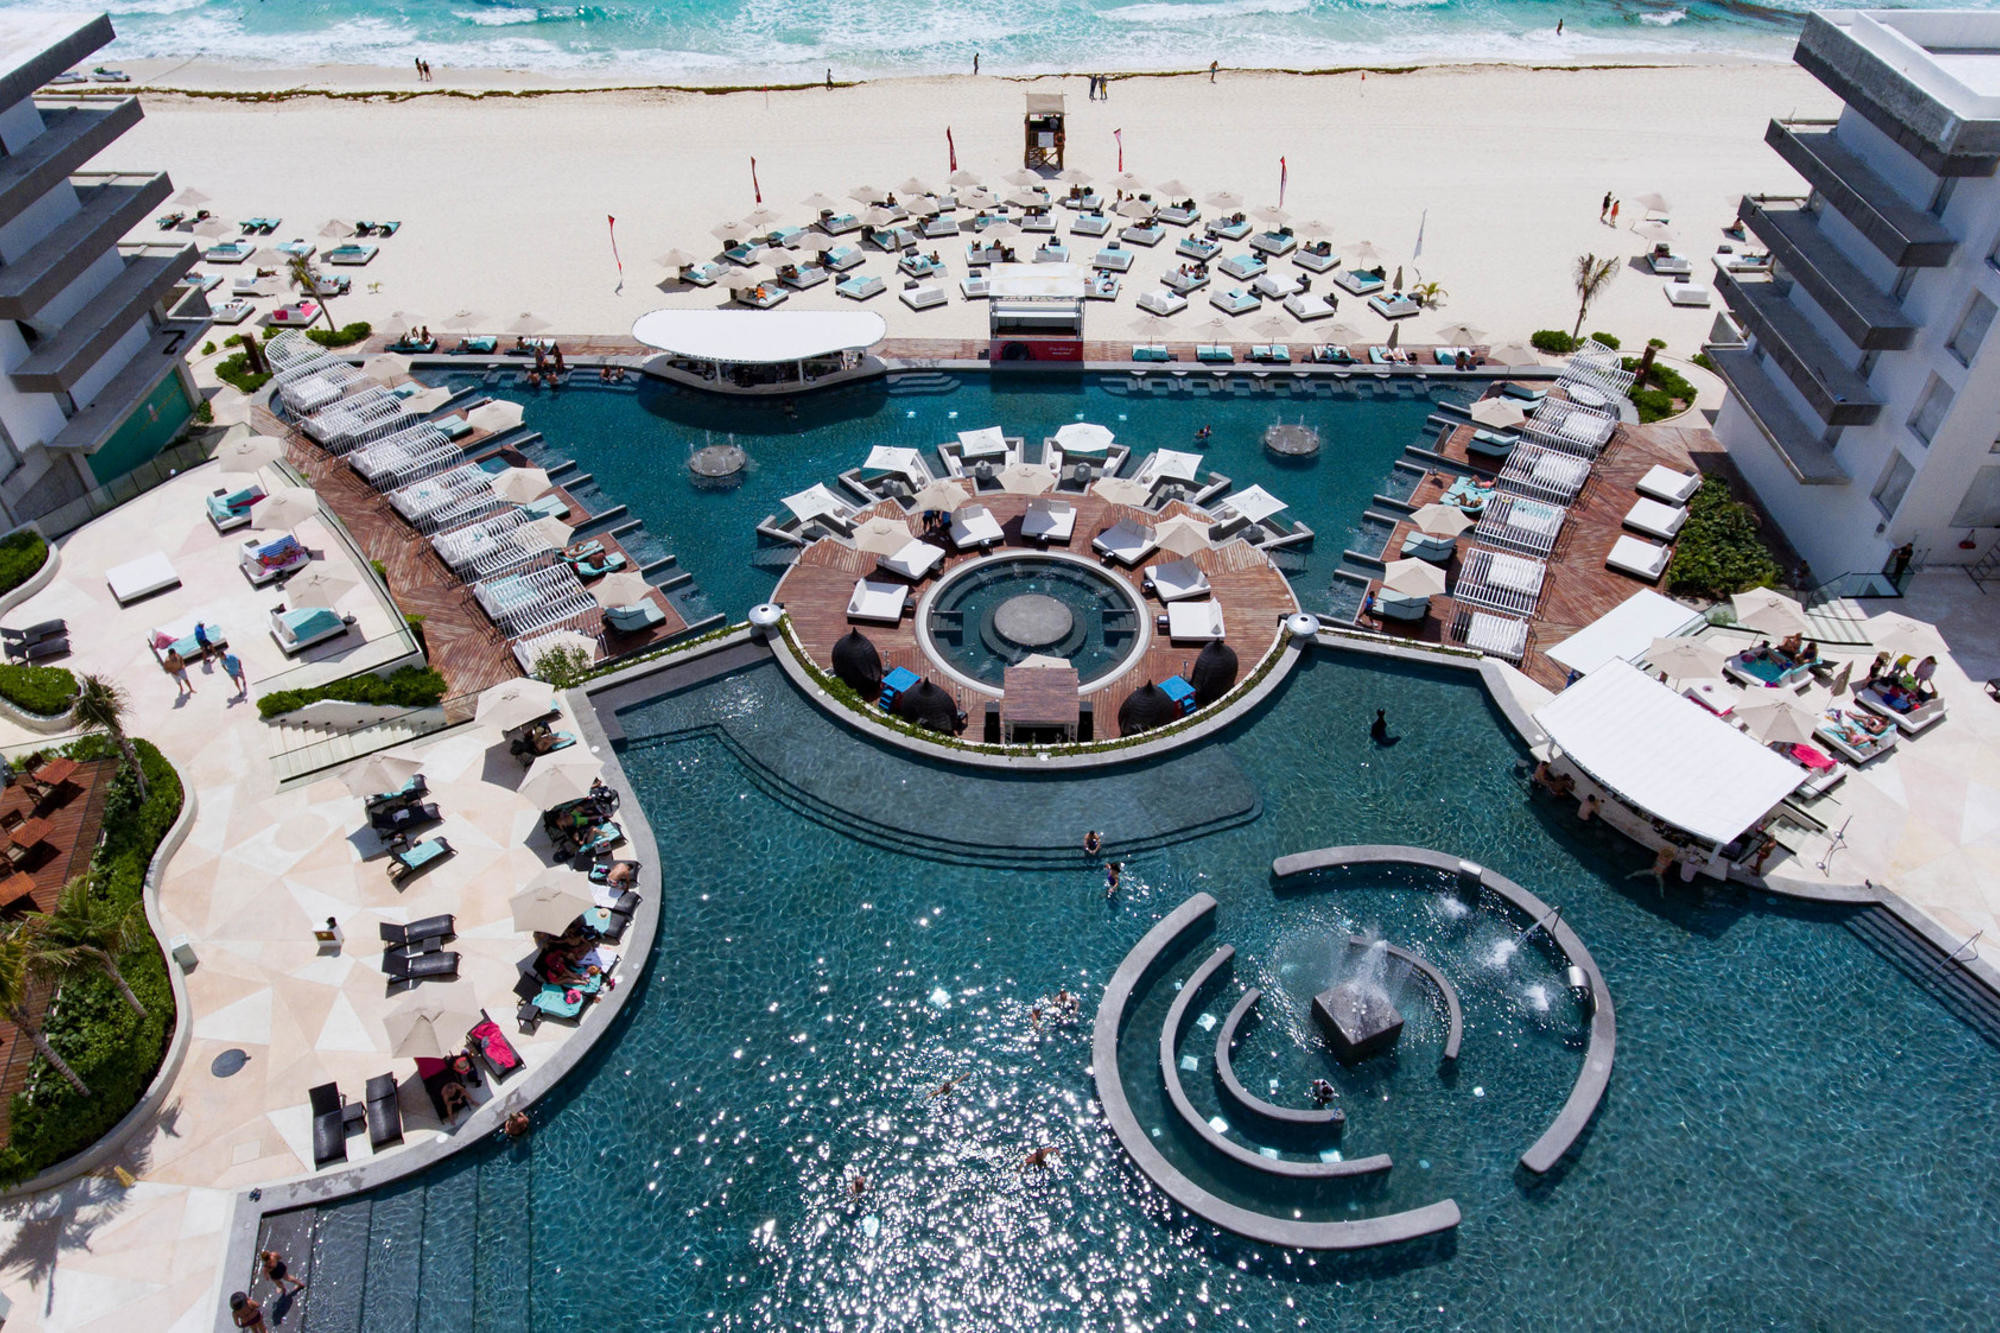 The pool and swim-up bar at Melody Maker Cancun